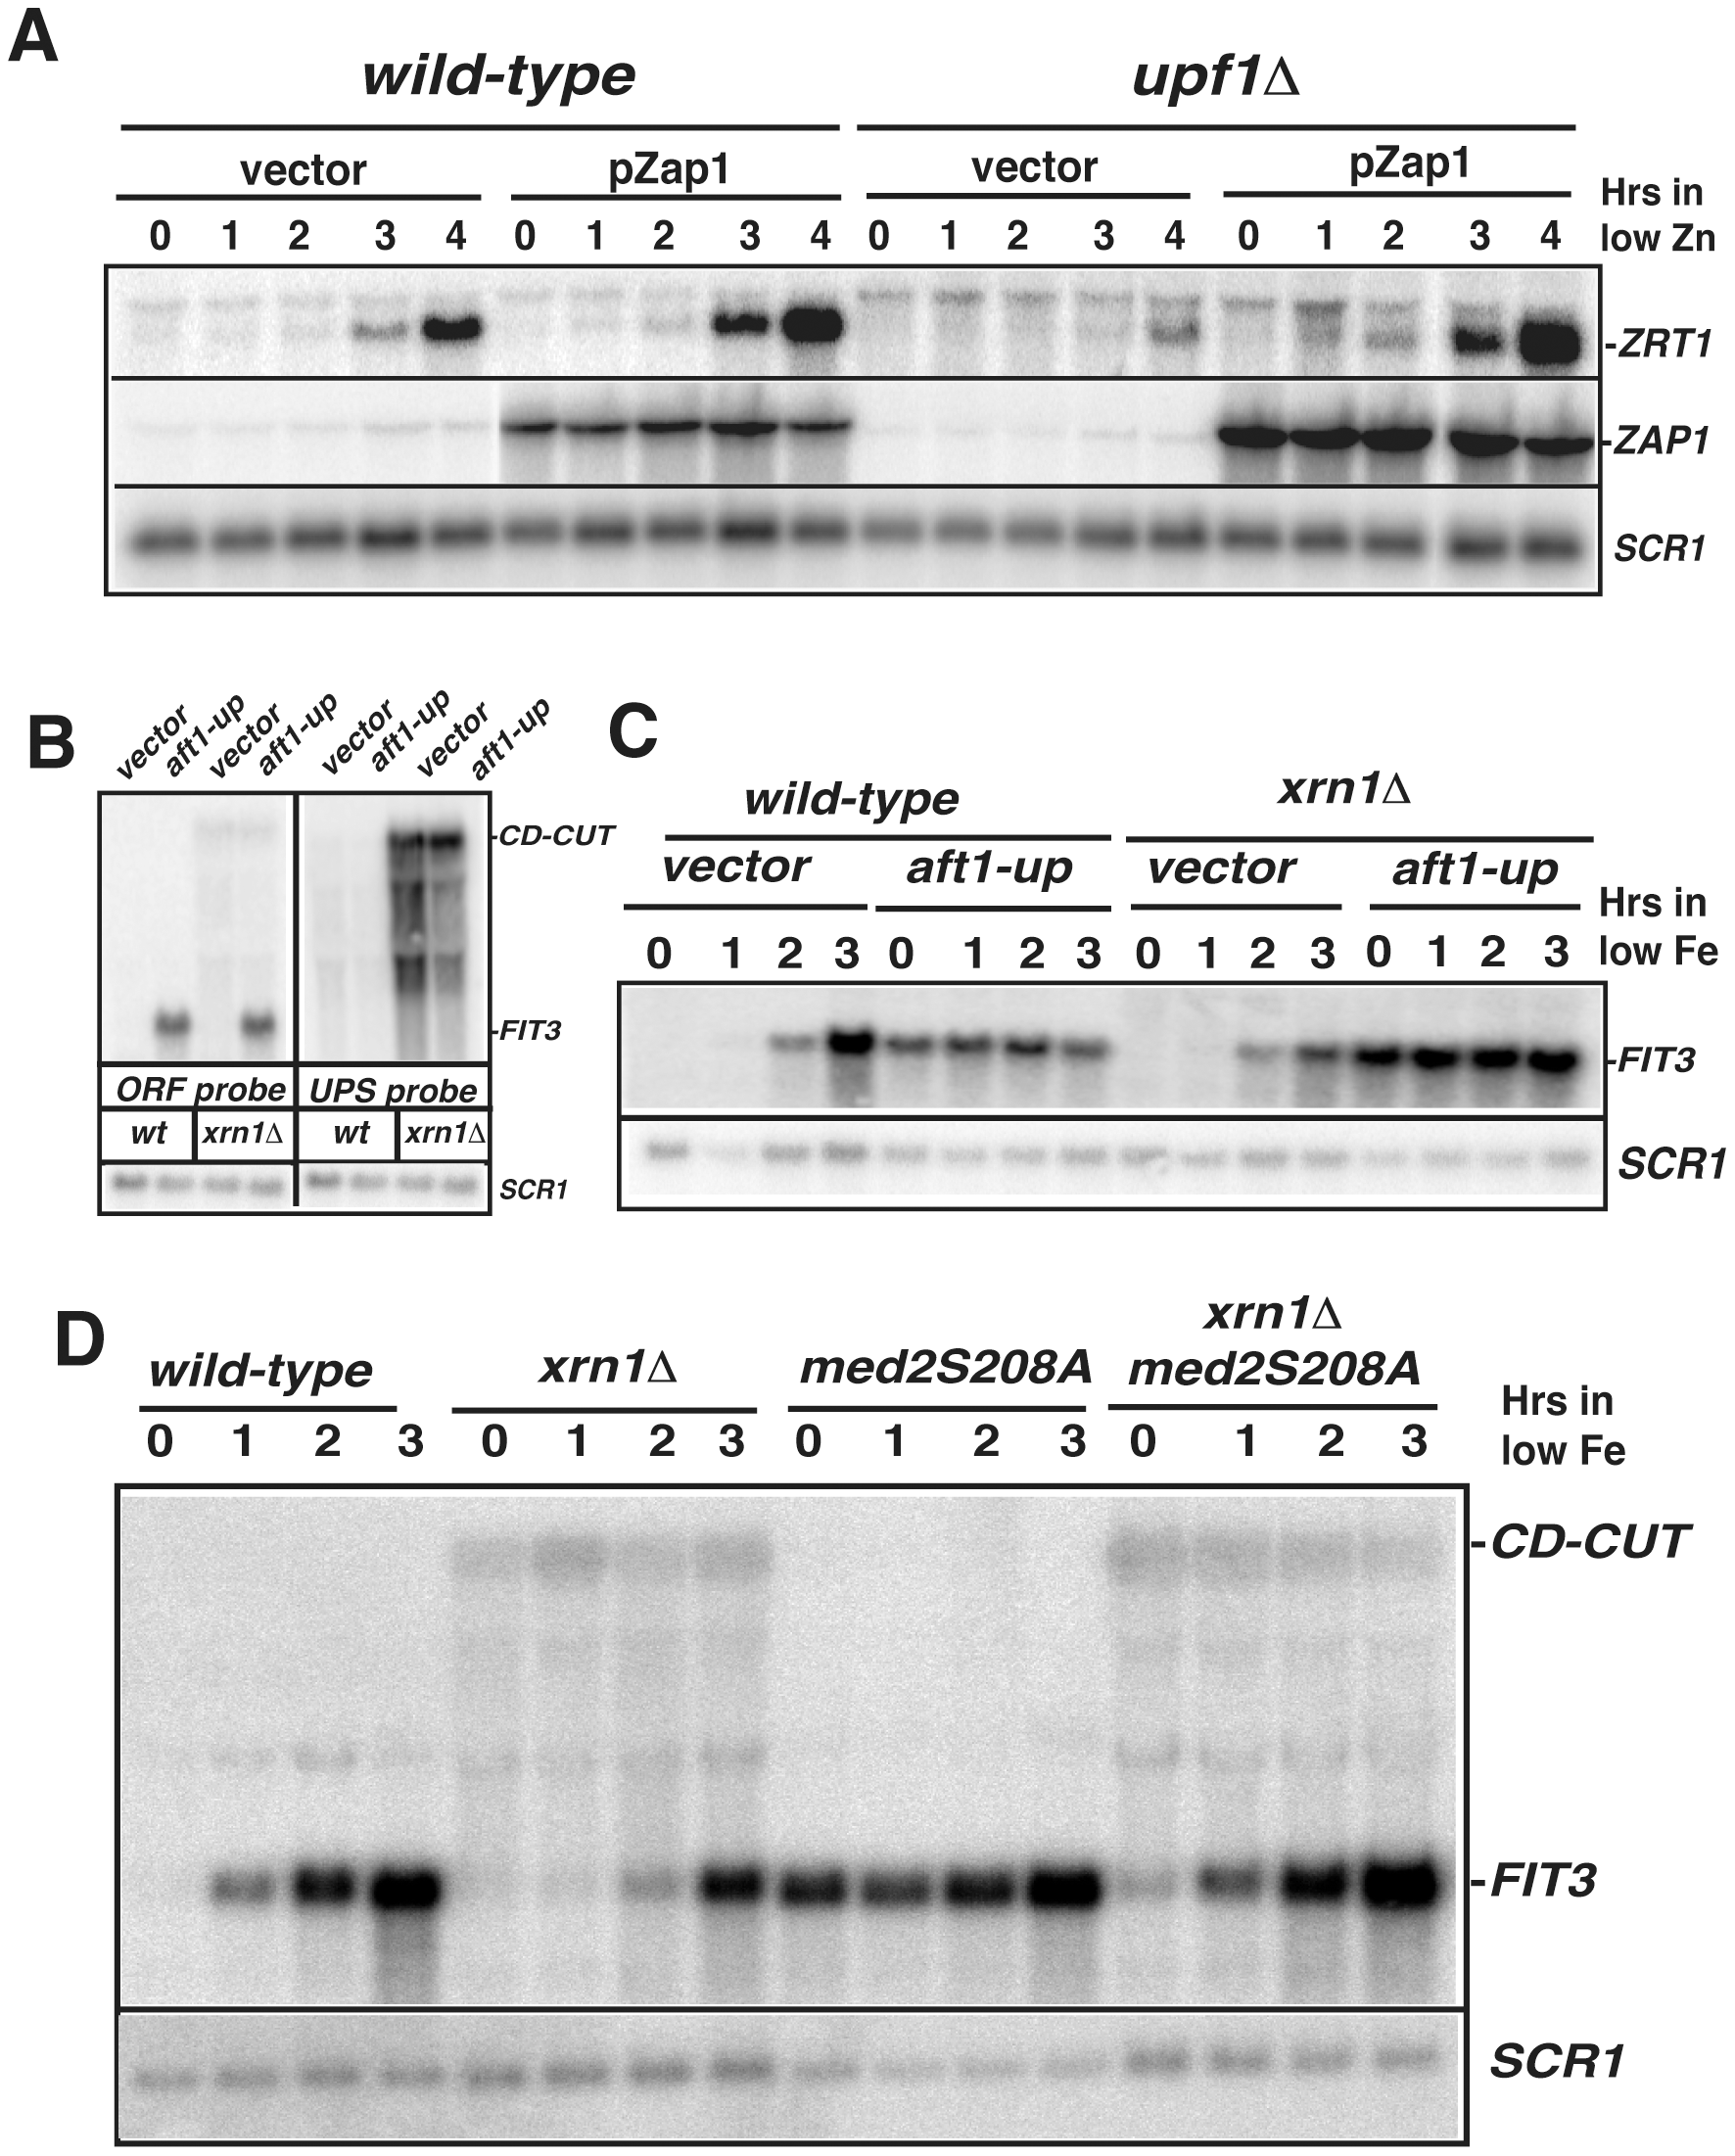 CD-CUT mediated transcriptional repression can be rescued by overexpression or constitutive activation of transcriptional activators.